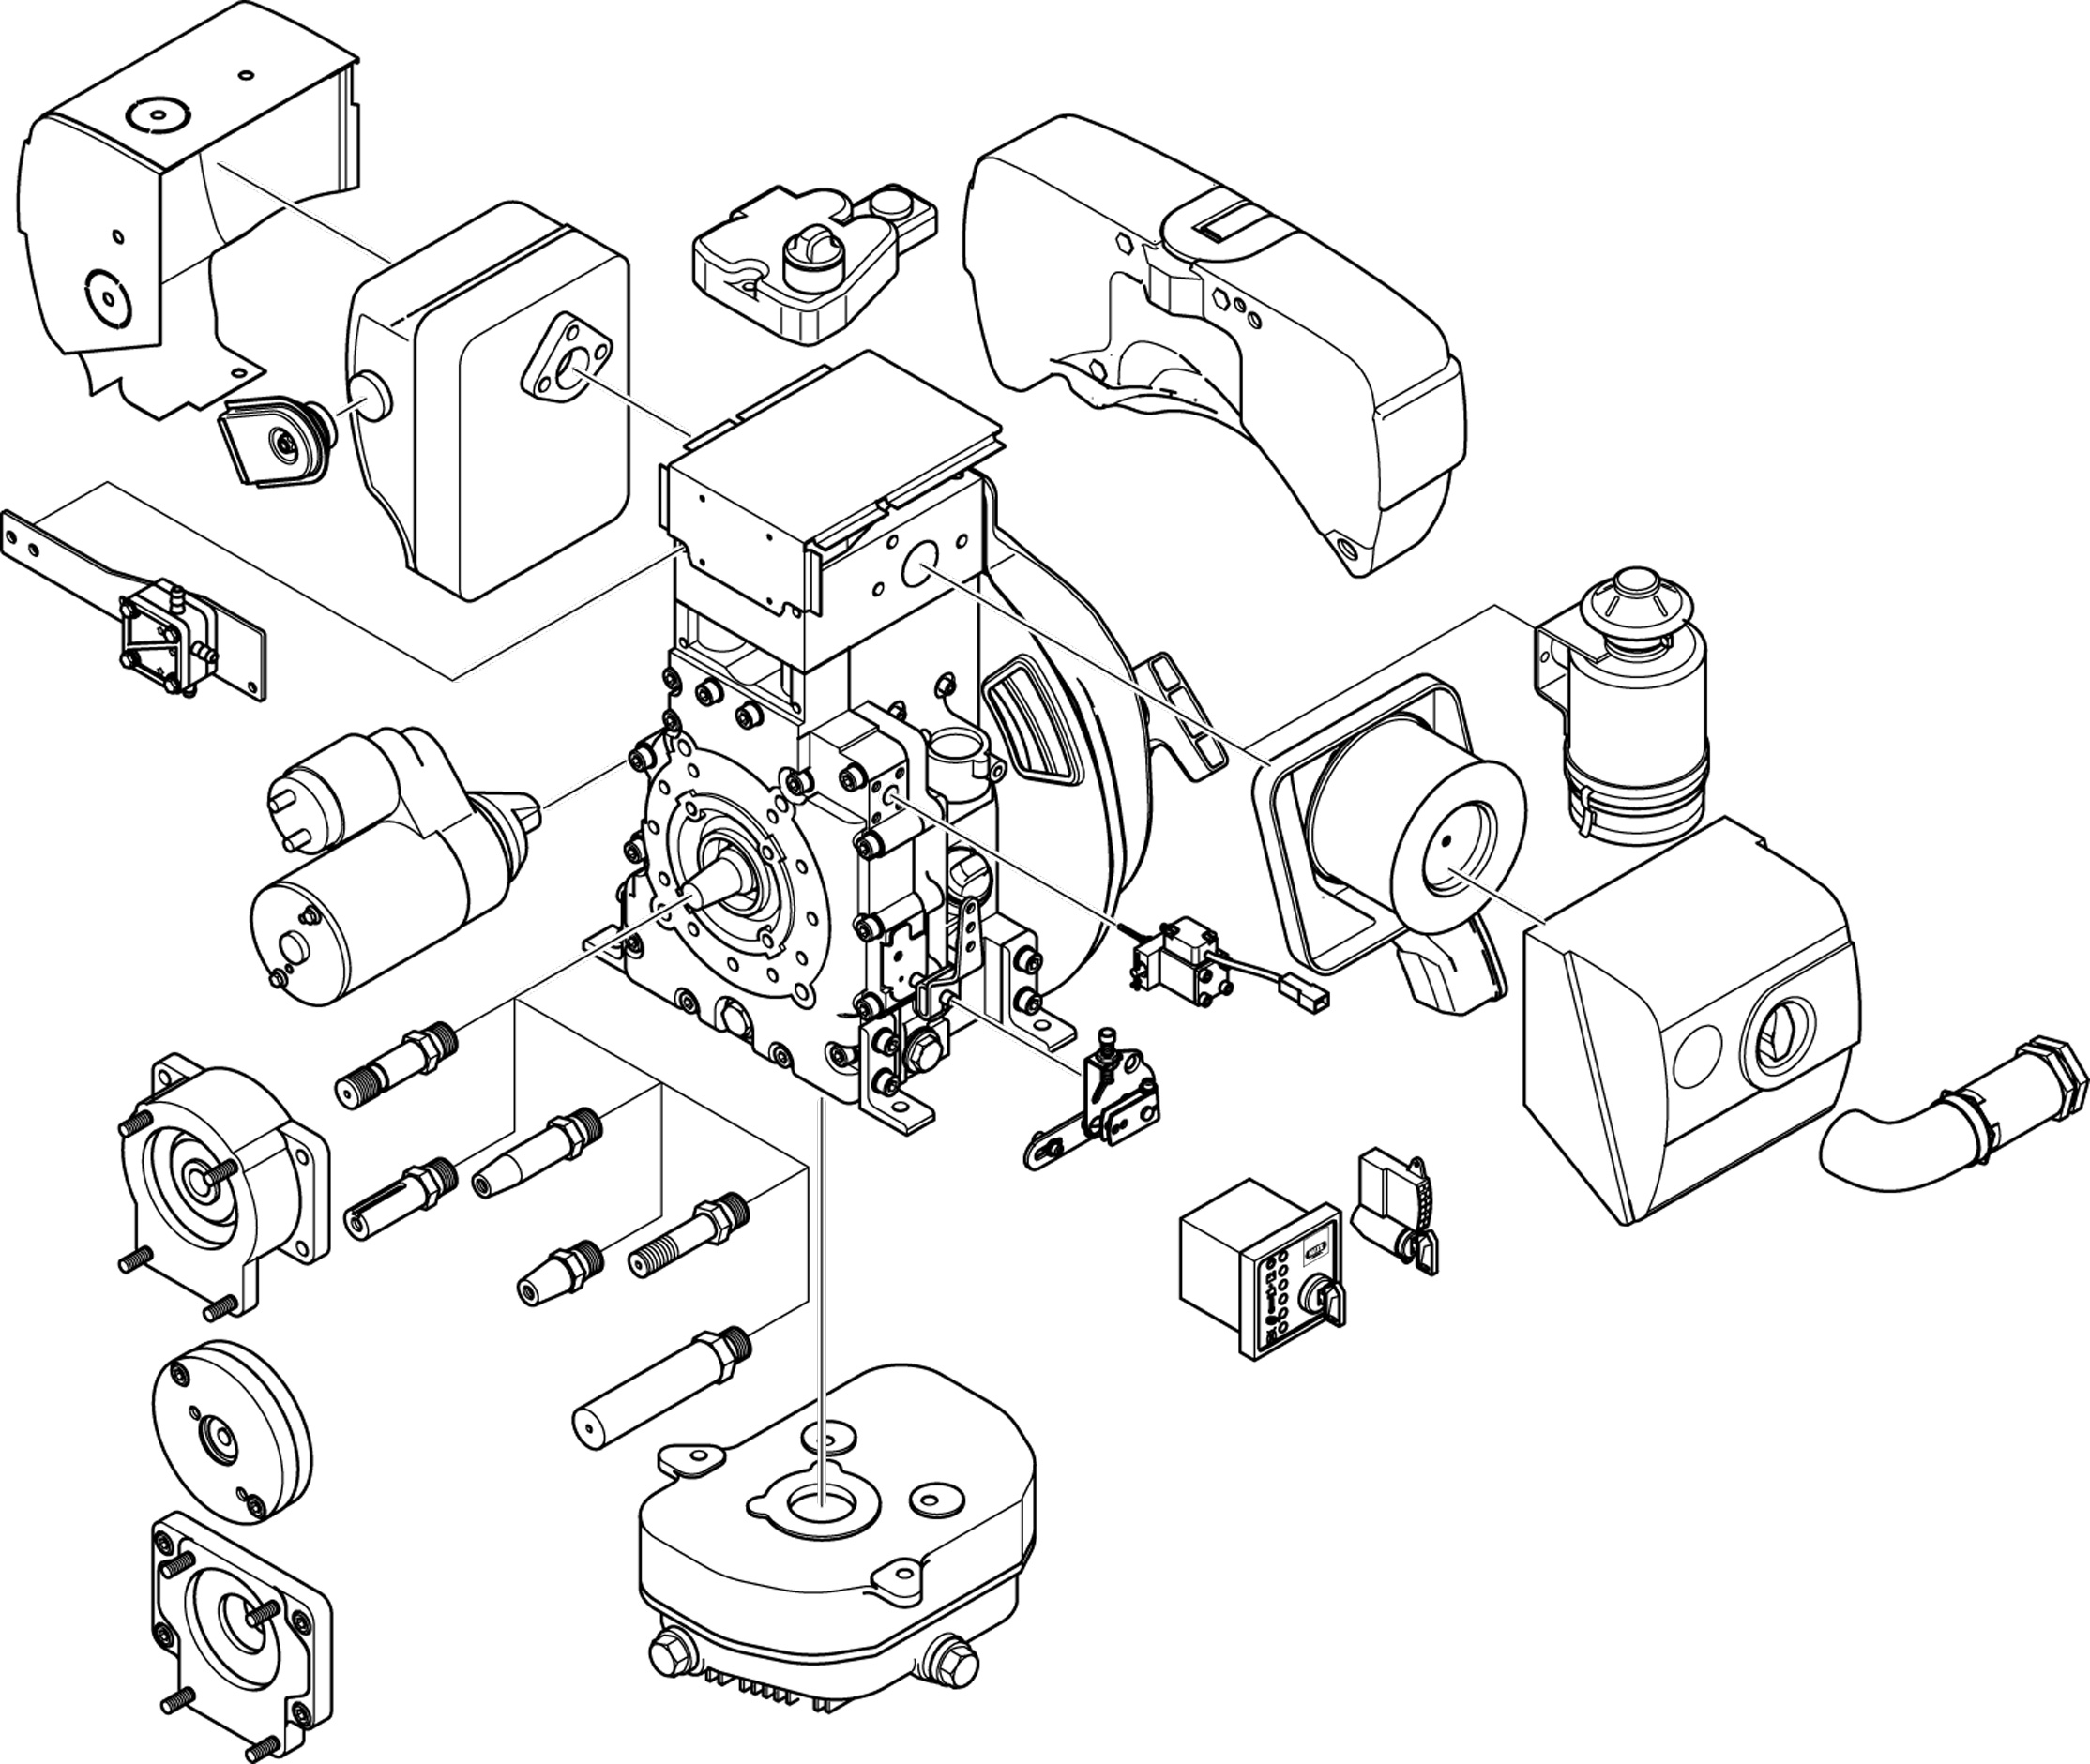 Diesel Engine Drawing At Free For Personal Use 2005 Ford Focus Wiring Diagram Pdf Parts